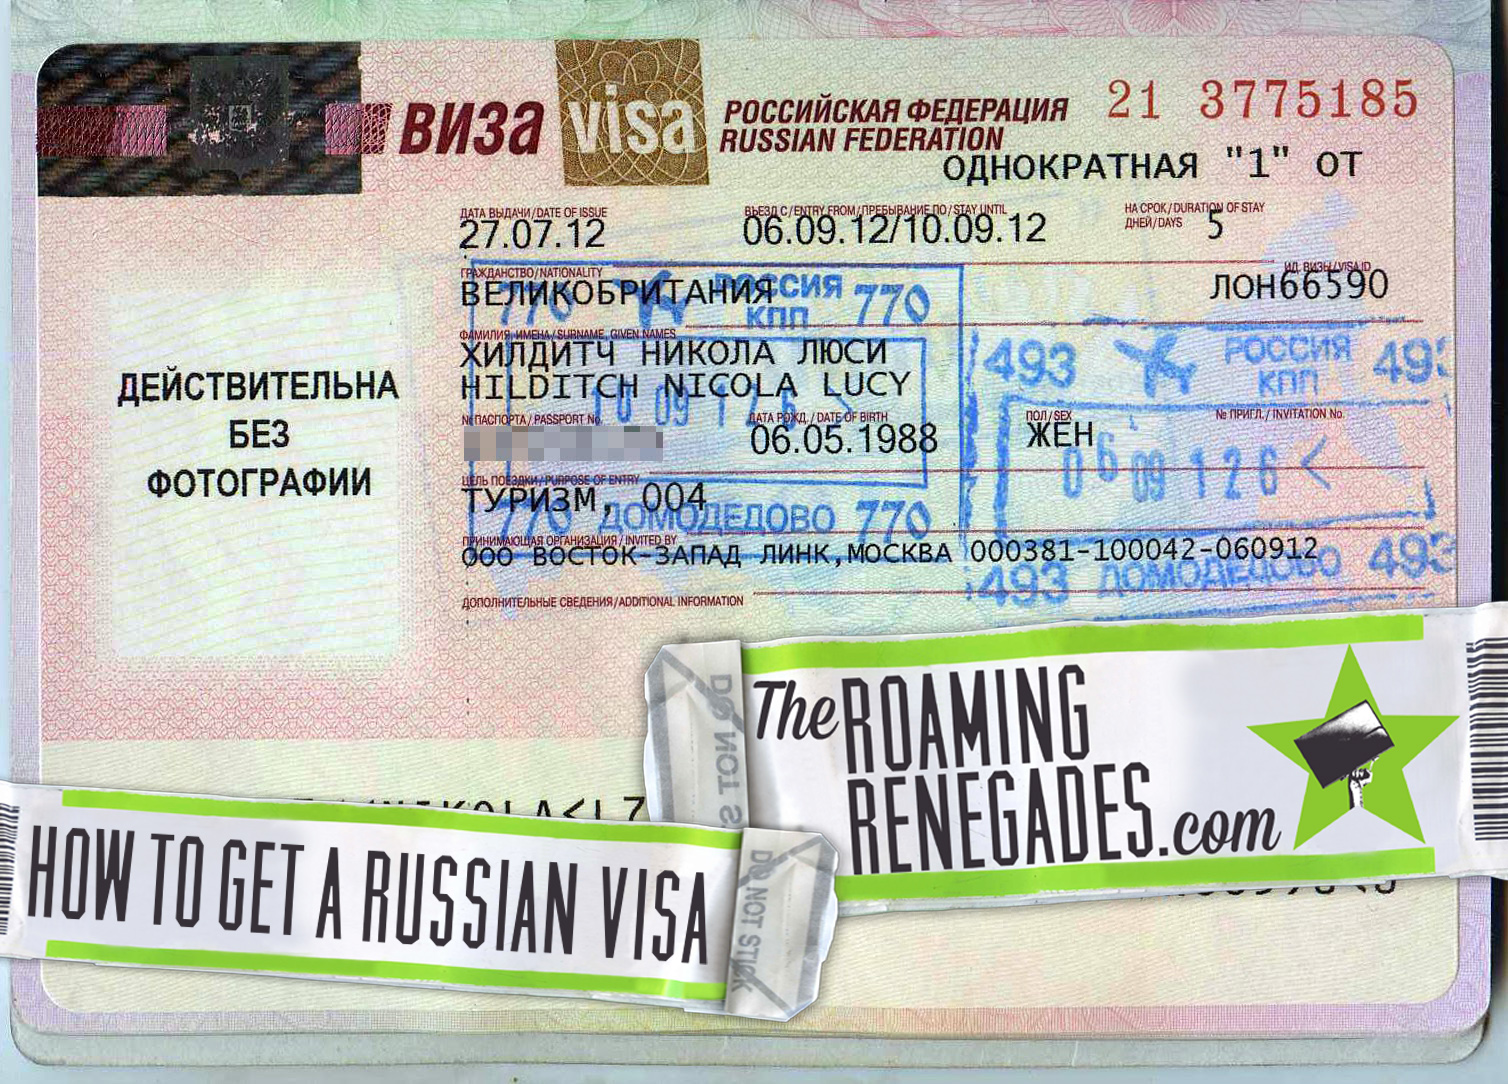 How to apply for a russian visa the roaming renegades russia moscow russian visa tourist visa stamps airport domodedovo thecheapjerseys Image collections